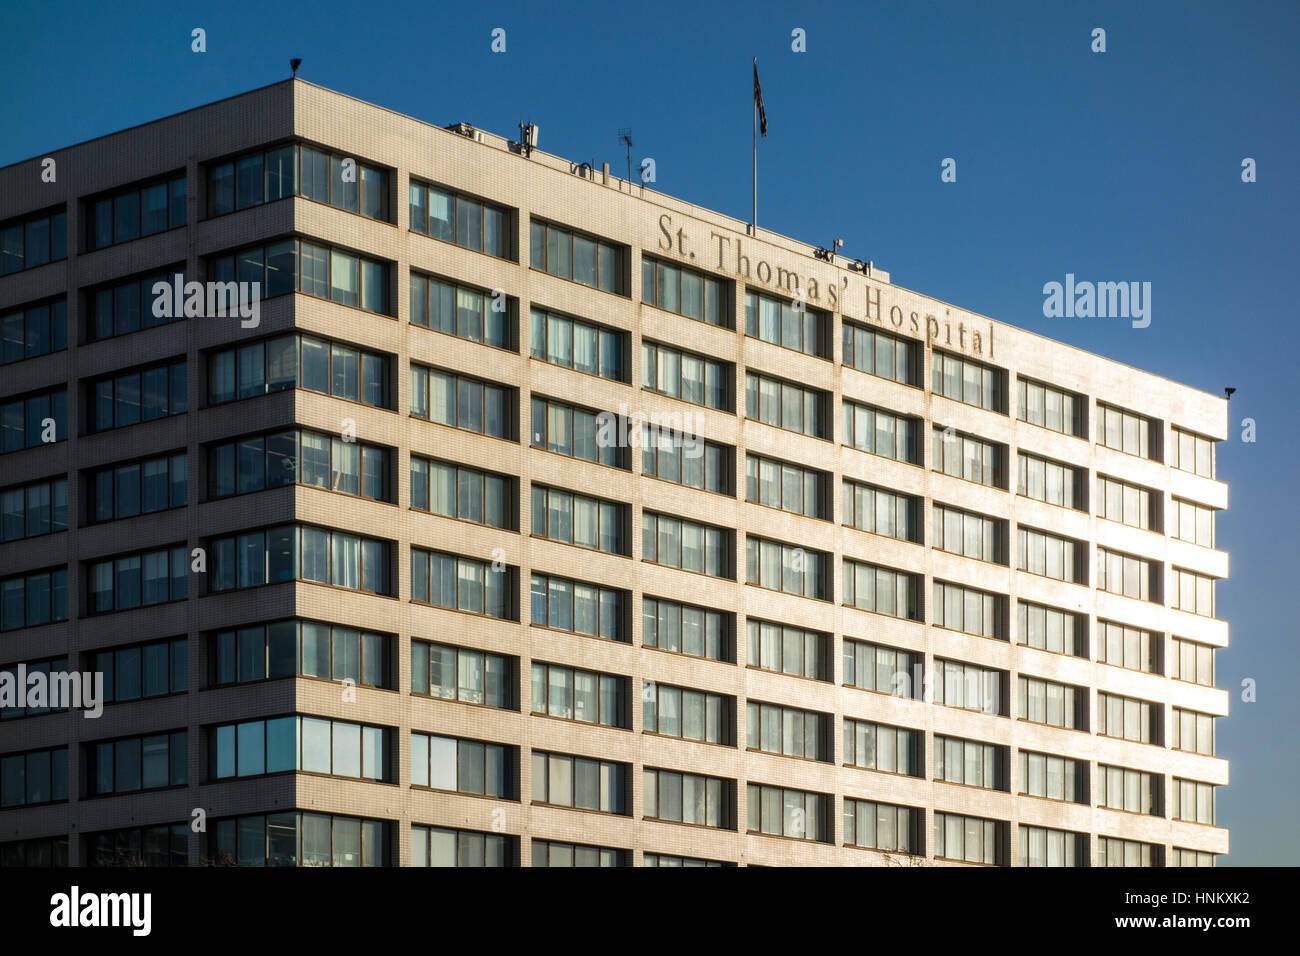 Bright sunlight hitting the side of St Thomas' Hospital building, London, UK - Stock Image